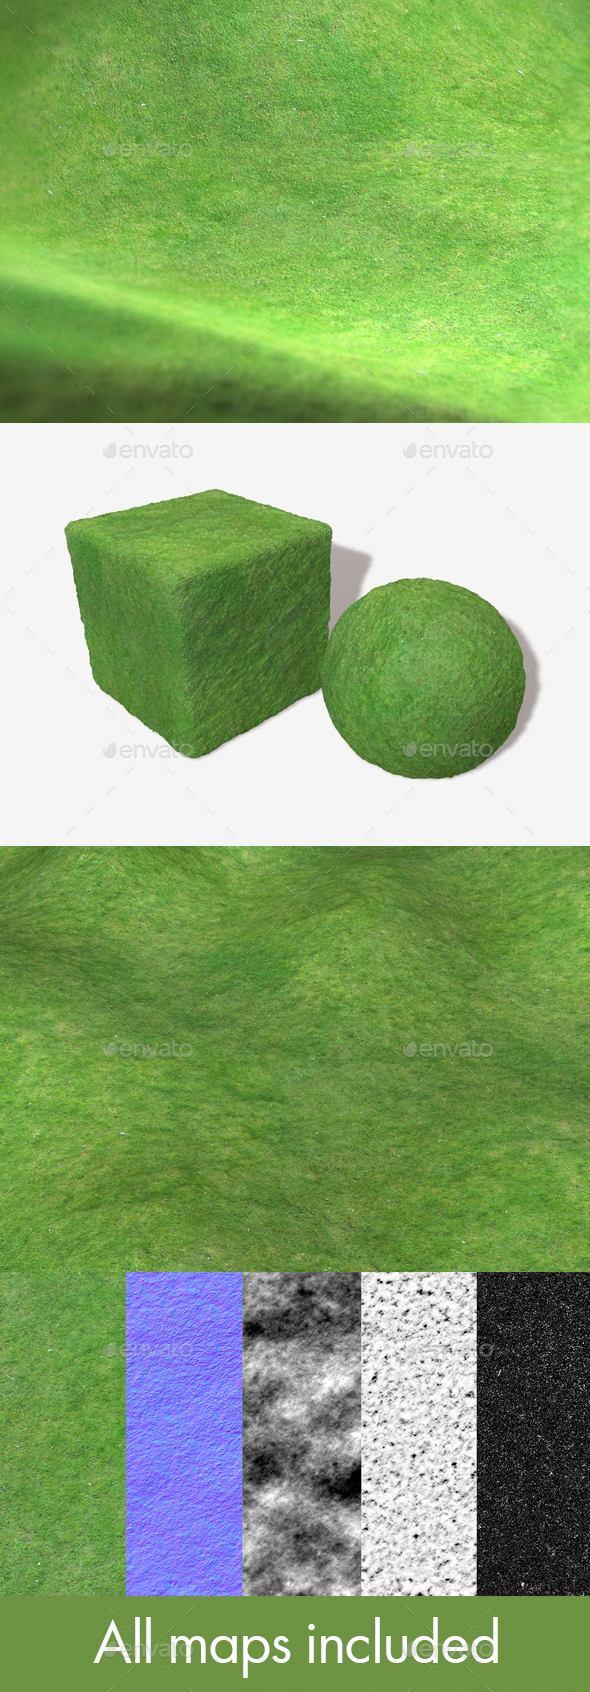 Grass Birds Eye View Seamless Texture - 3DOcean Item for Sale